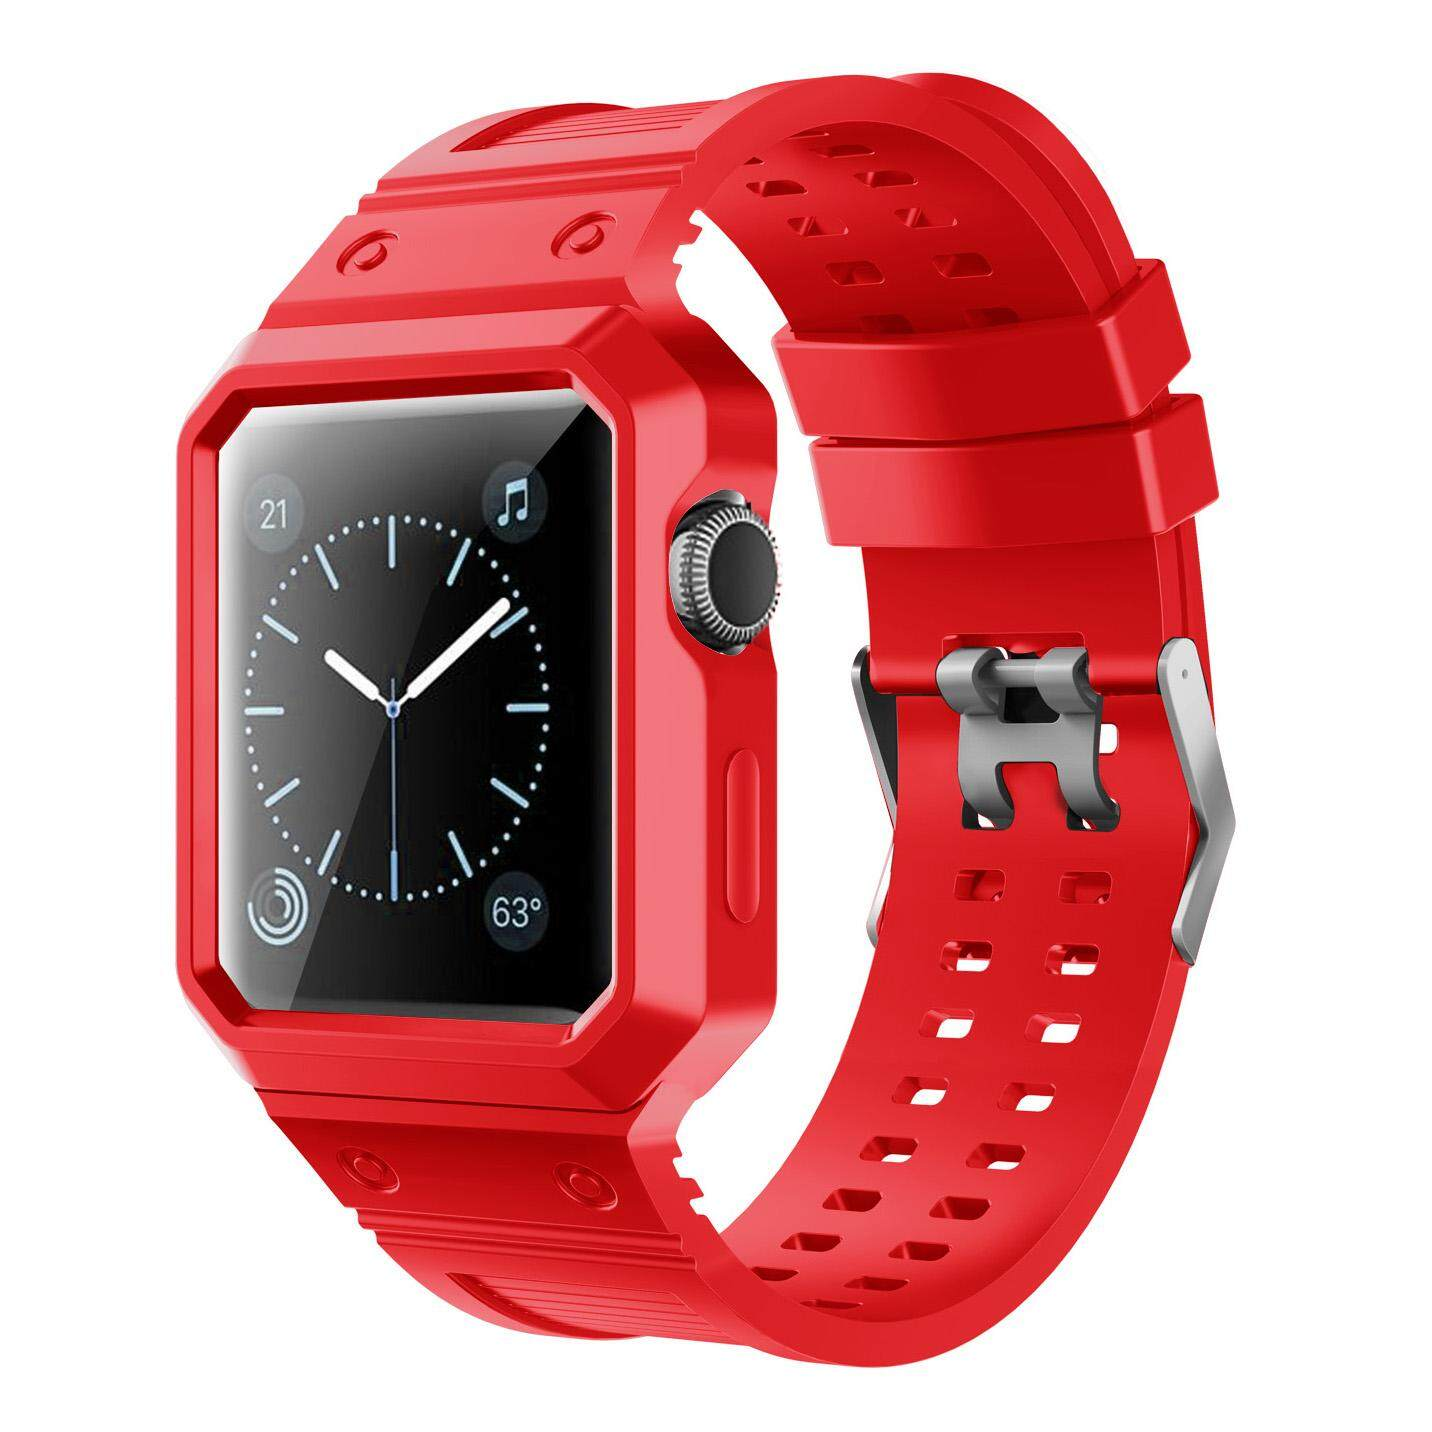 Where Can You Buy Tpu Silicone Watch Band Strap For Iwatch 42Mm With Tpu Silicone Full Protective Case Intl